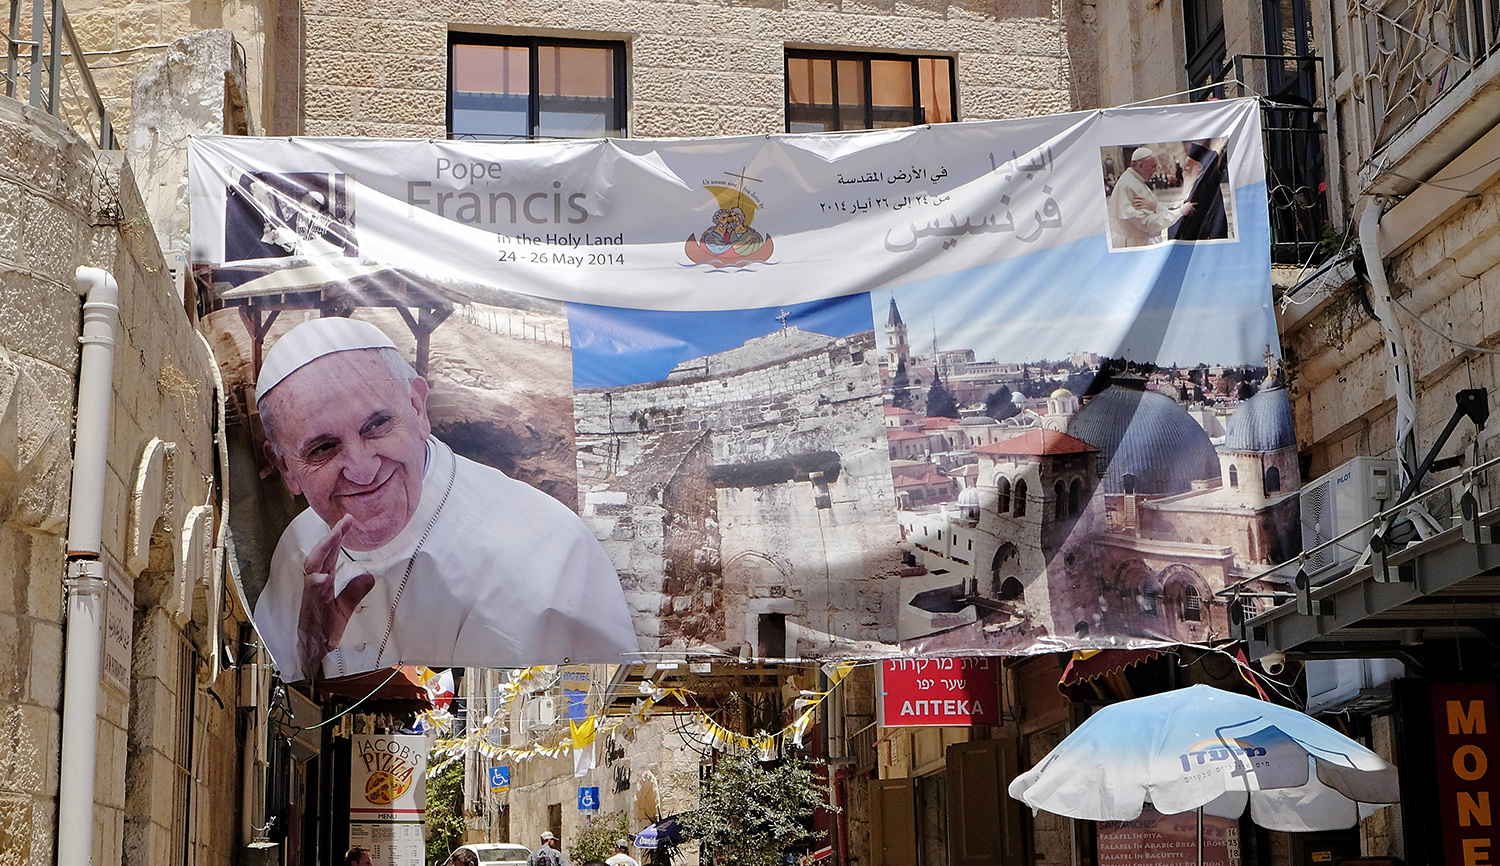 A banner welcoming Pope Francis hangs near the Old City in Jerusalem on May 28, 2014. AP Photo/Robert E. Klein.